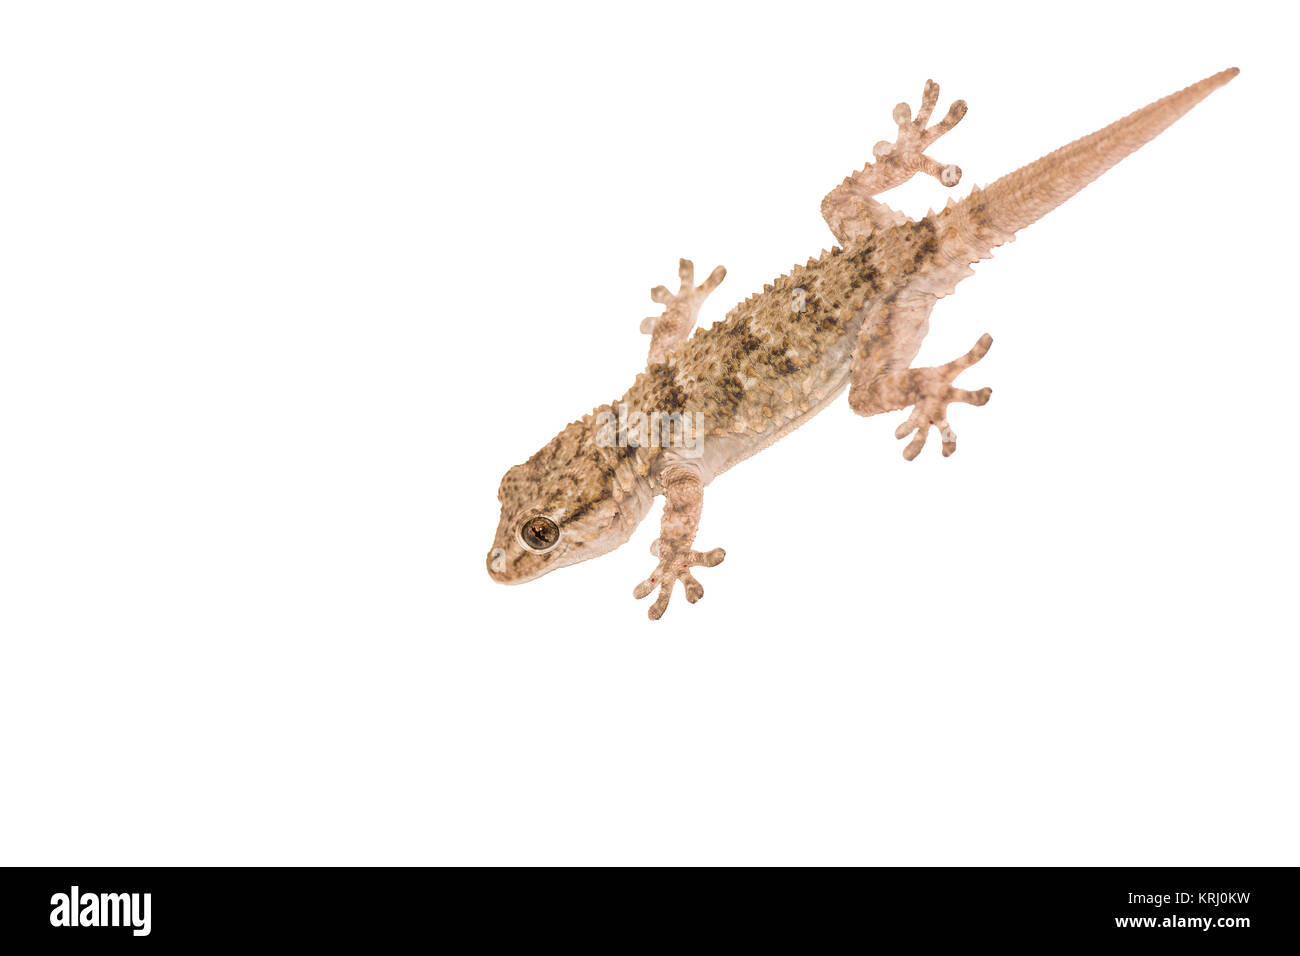 gekko against white background Stock Photo